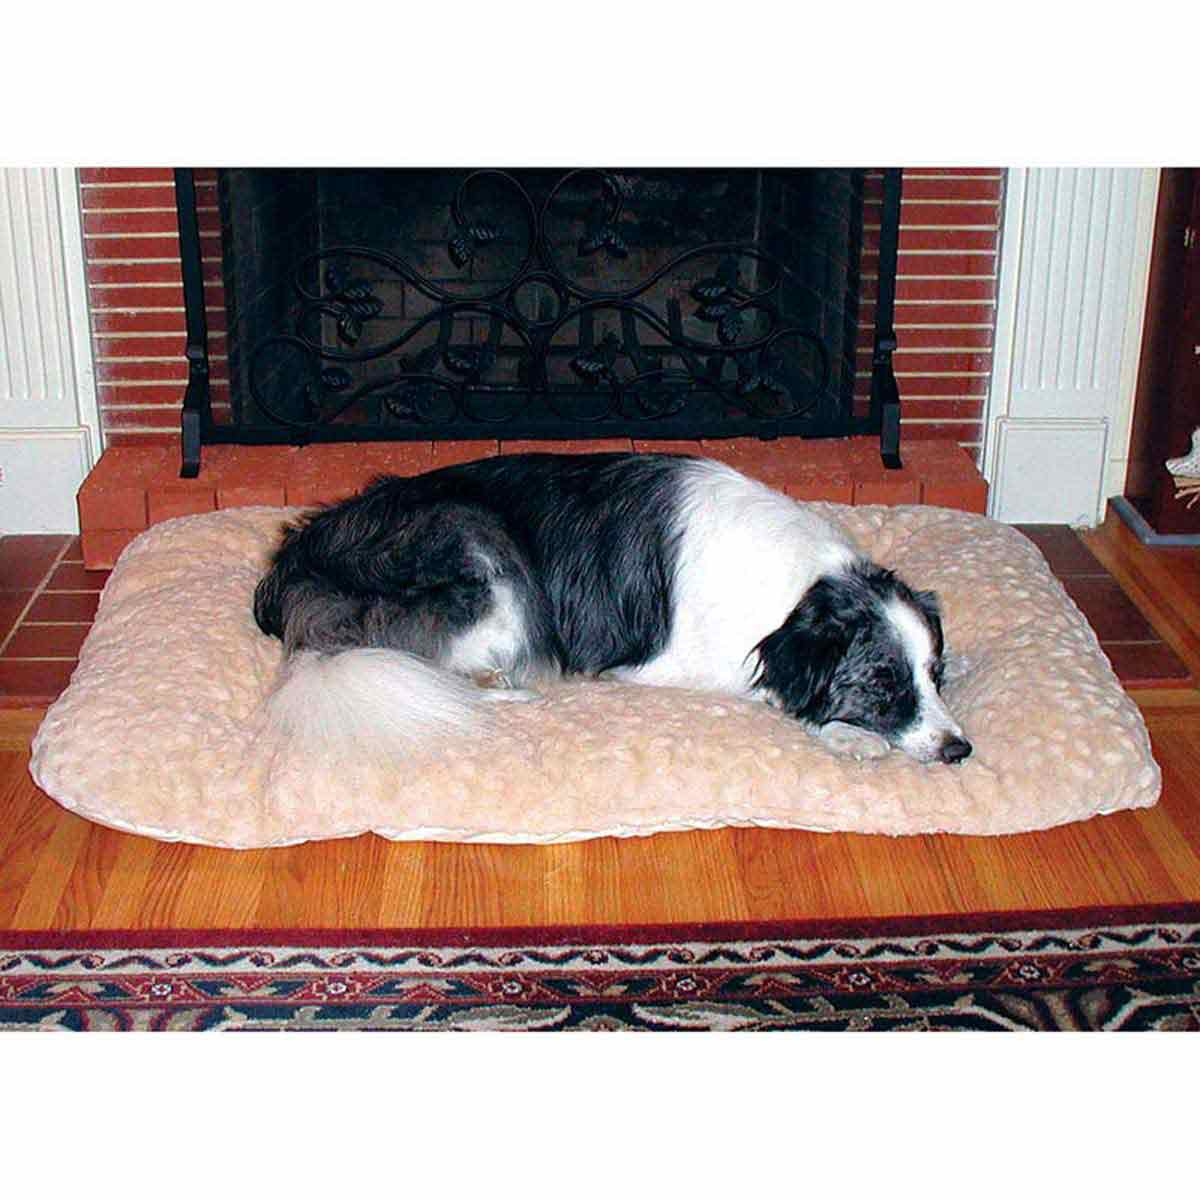 Medium Dog Sleeping on Snoozzy Comforter 23 inches by 16 inches Natural